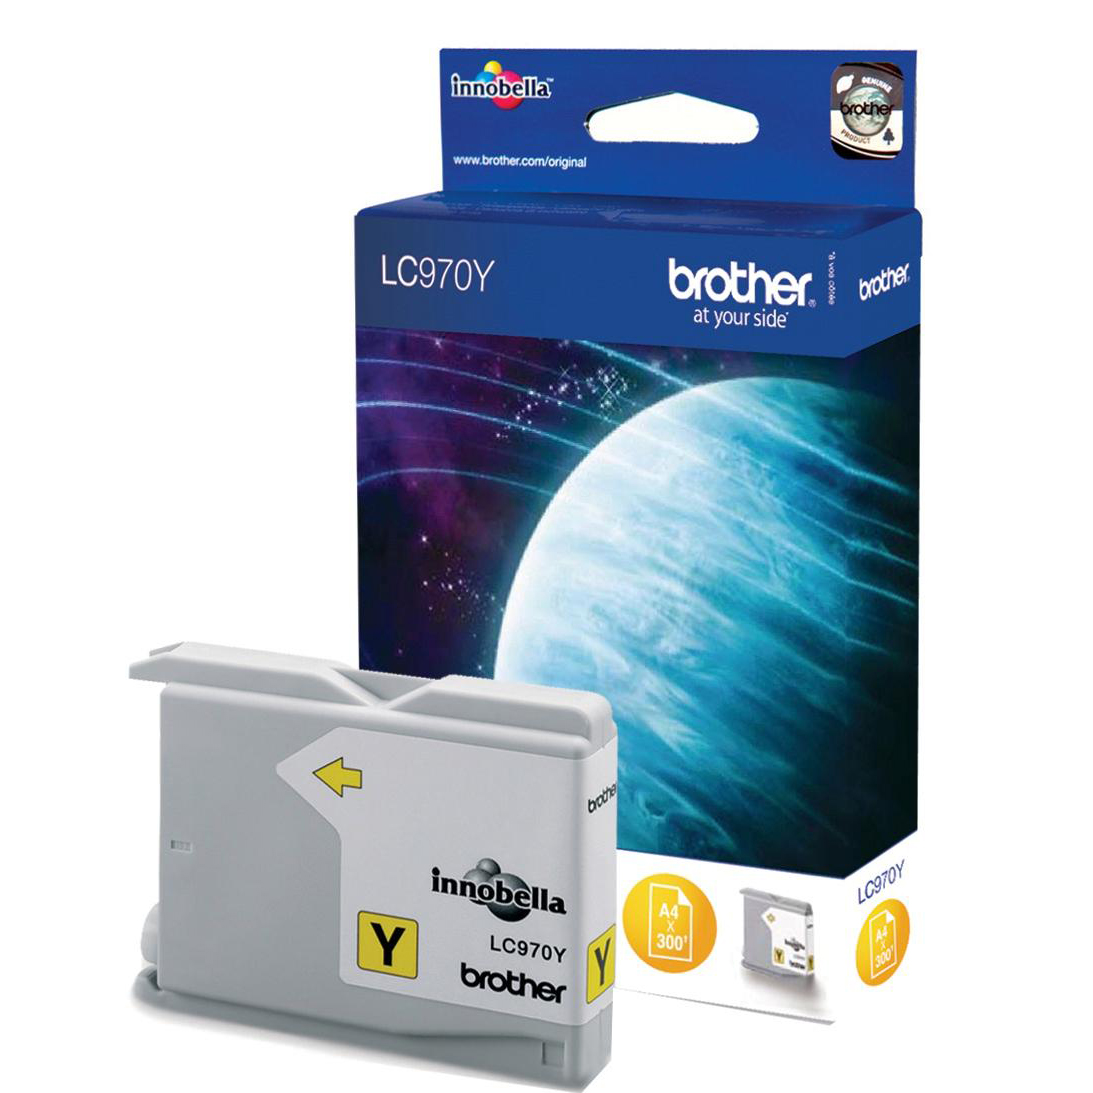 Brother Inkjet Cartridge Page Life 300pp Yellow Ref LC970Y